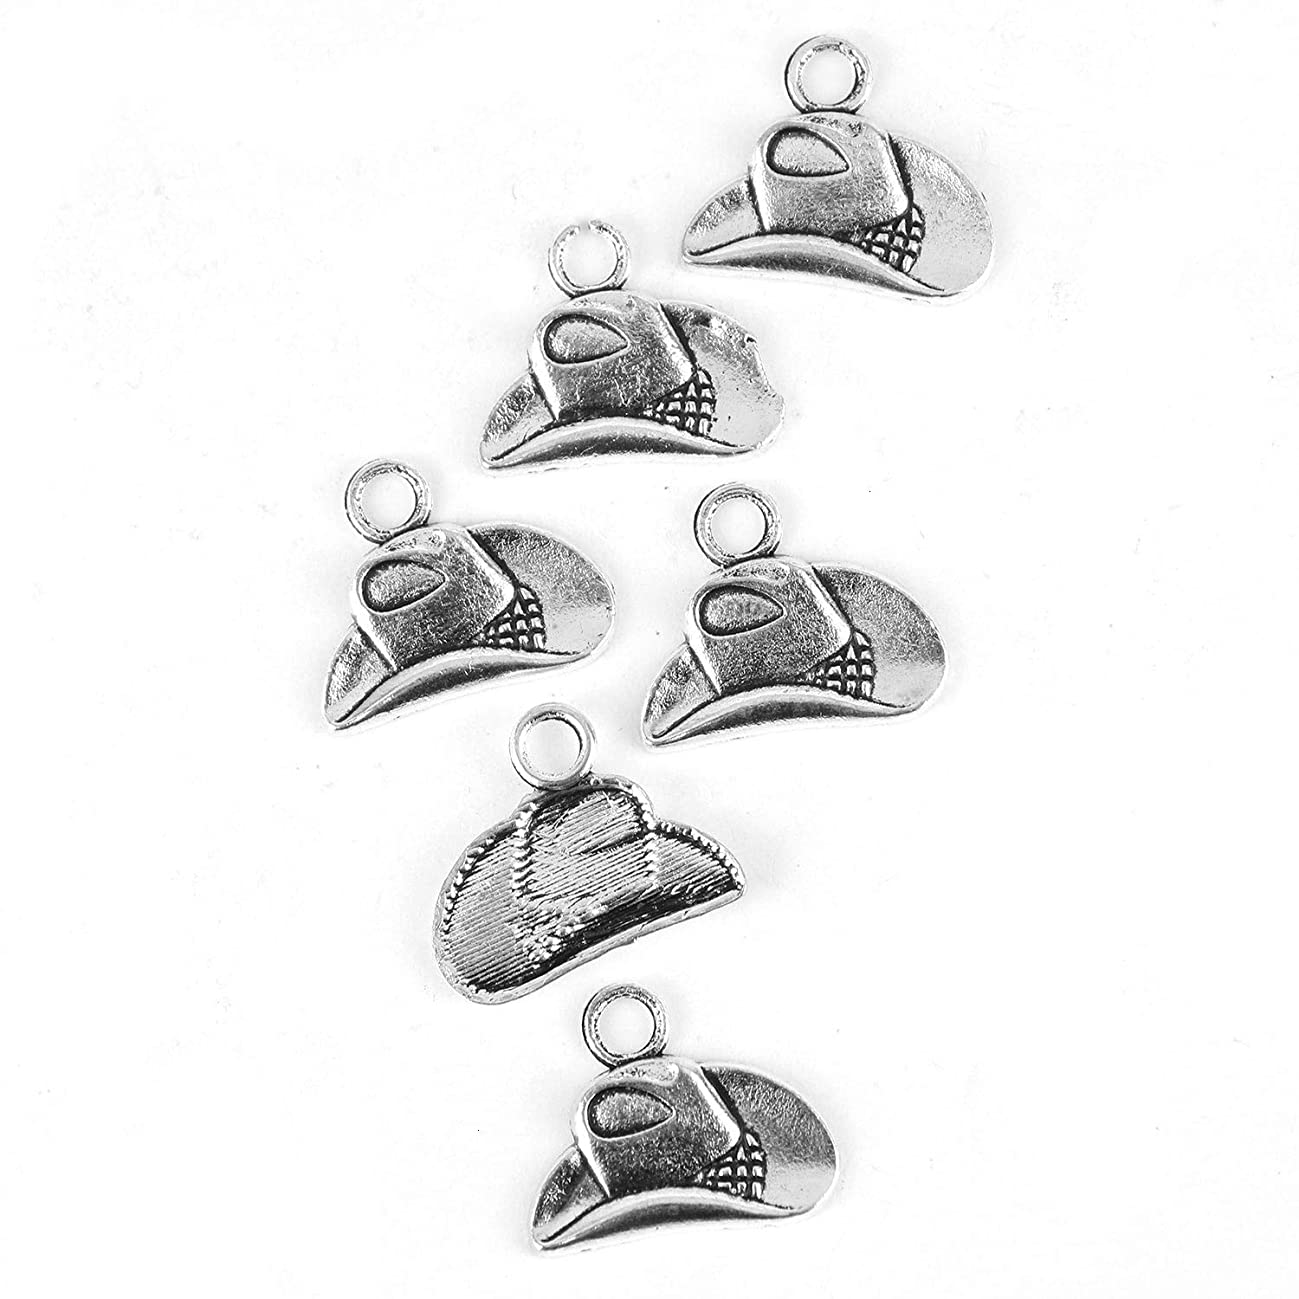 Monrocco 50PC Silver Cowboy Hat Charm Western Charms for Jewelry Making Necklace DIY 20x16mm